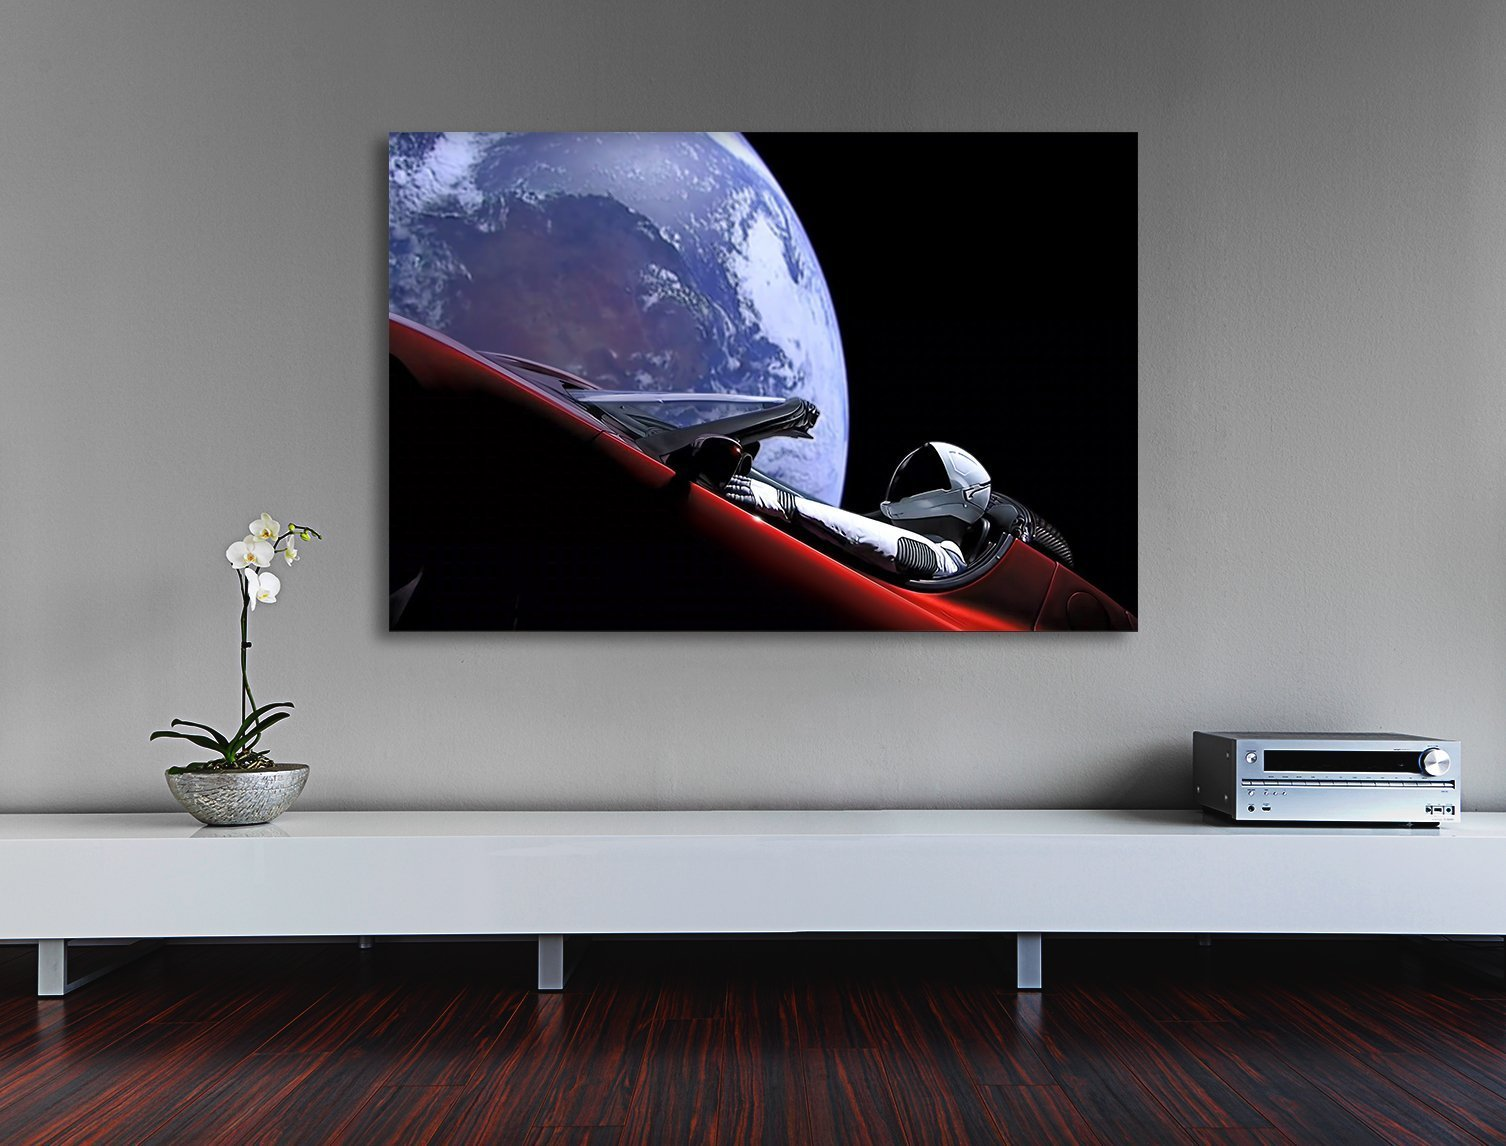 HIGH QUALITY, remastered Tesla in space, Launch of Falcon Heavy 2018 Space X photography canvas print